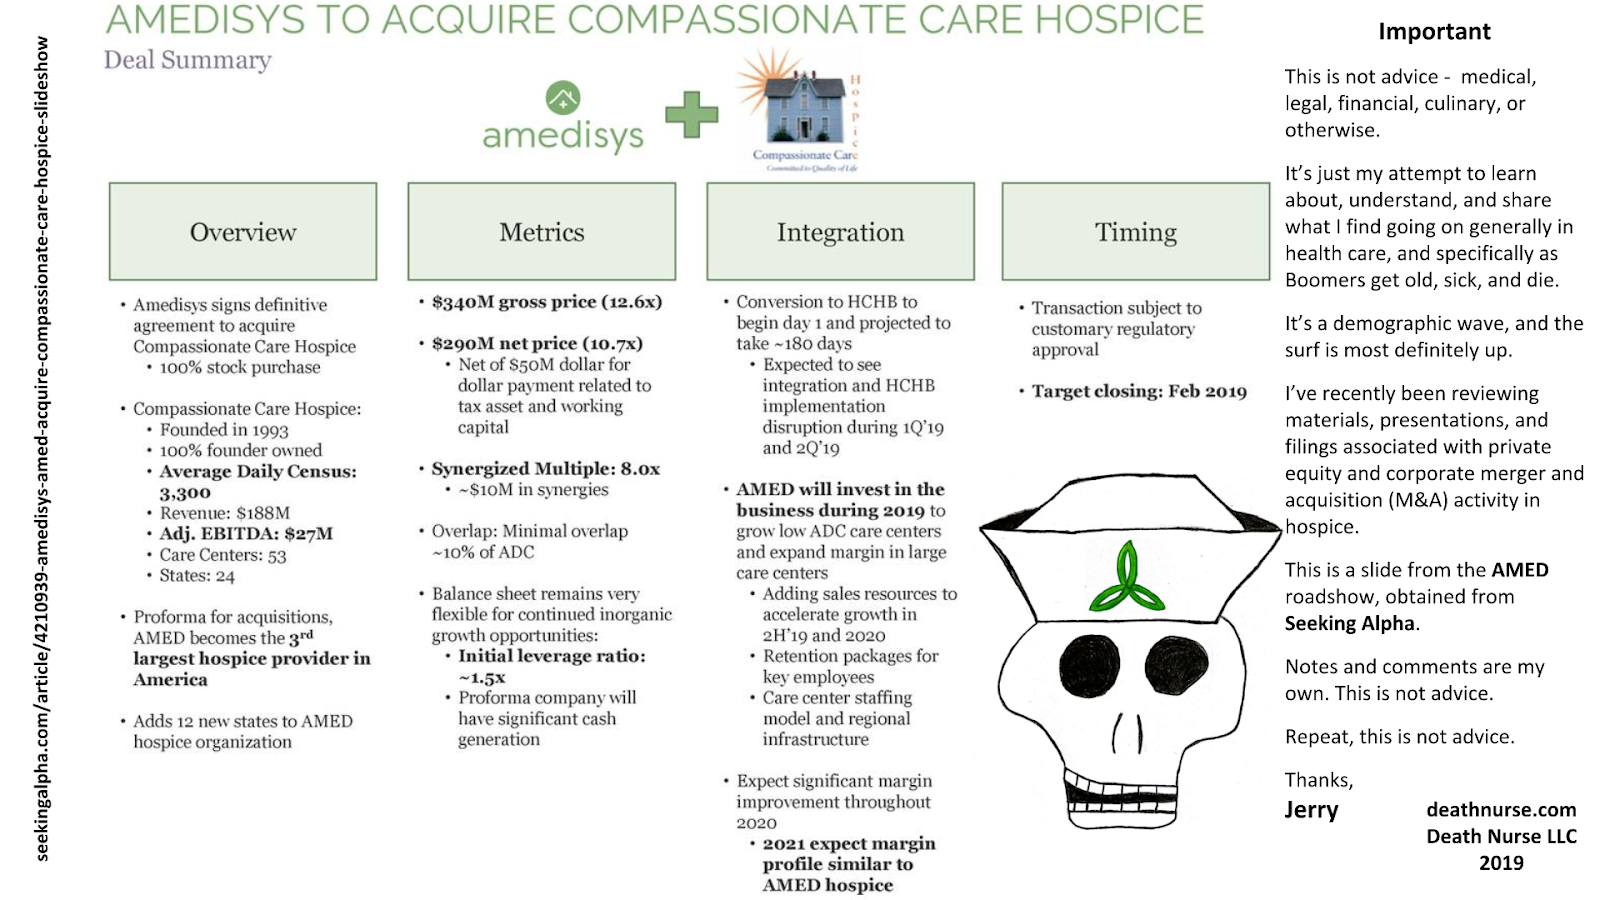 Death Nurse: This is not financial or investment advice